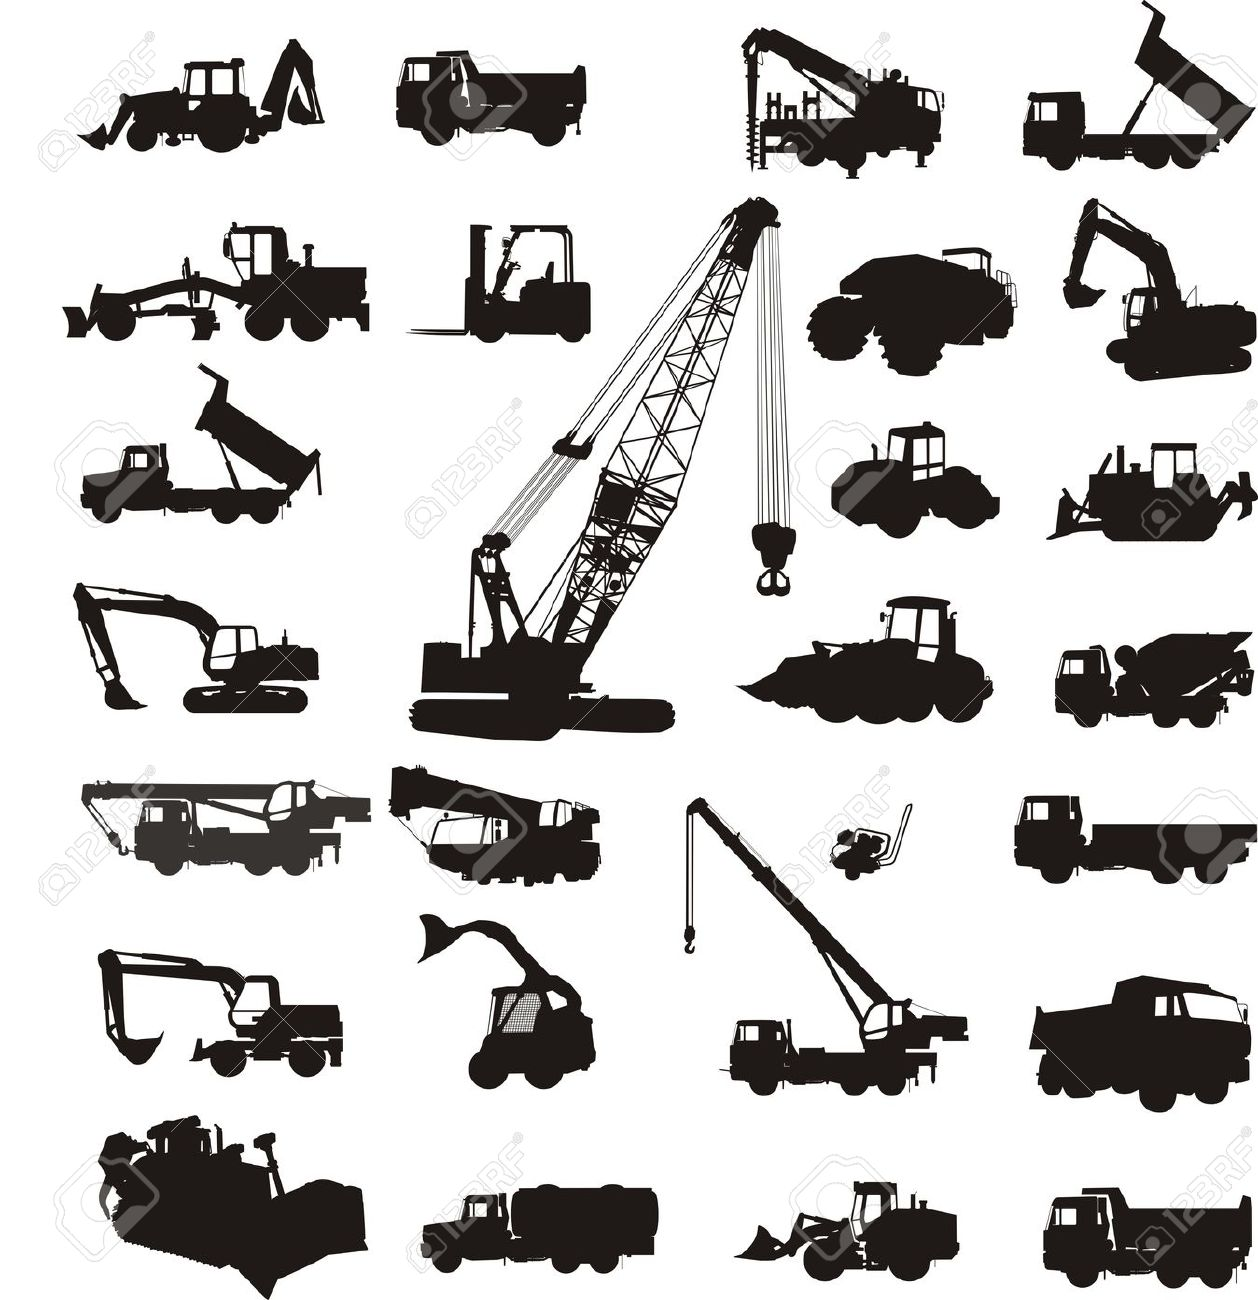 Free Equipment Sign Cliparts Download Free Clip Art Free Clip Art On Clipart Library